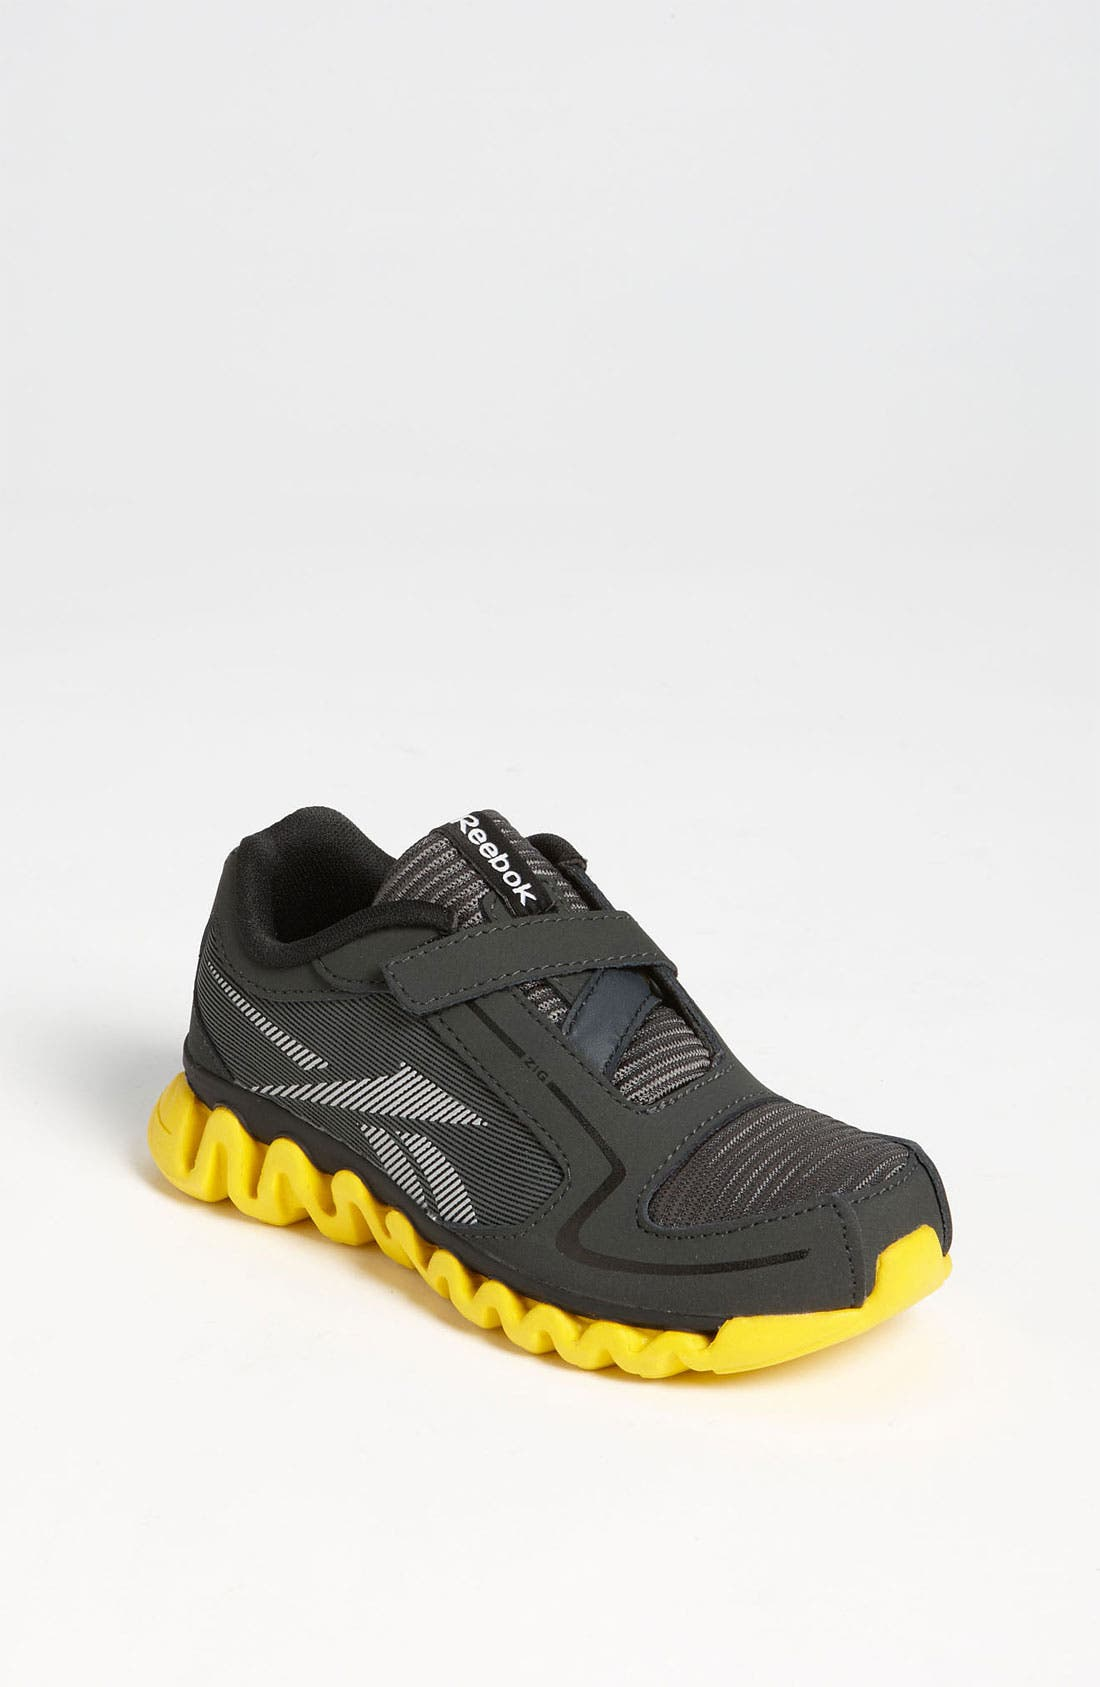 Alternate Image 1 Selected - Reebok 'ZigLite Run' Sneaker (Baby, Walker & Toddler)